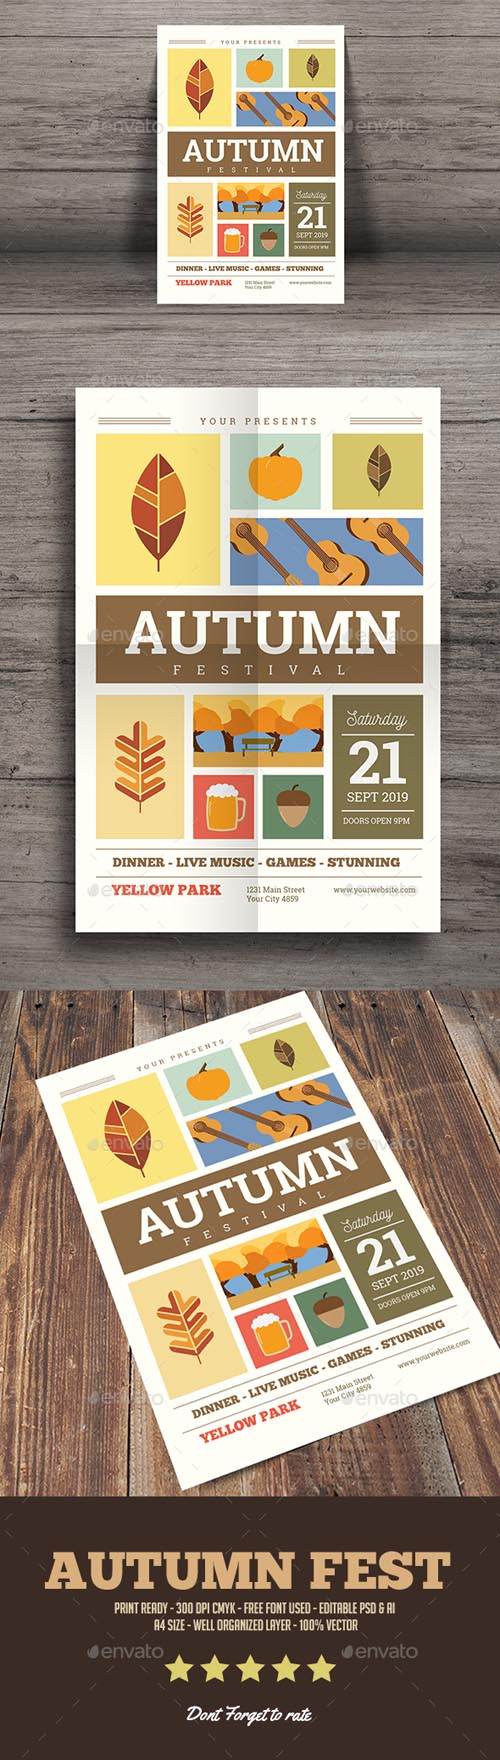 Autumn.Festival.Flyer.17810780